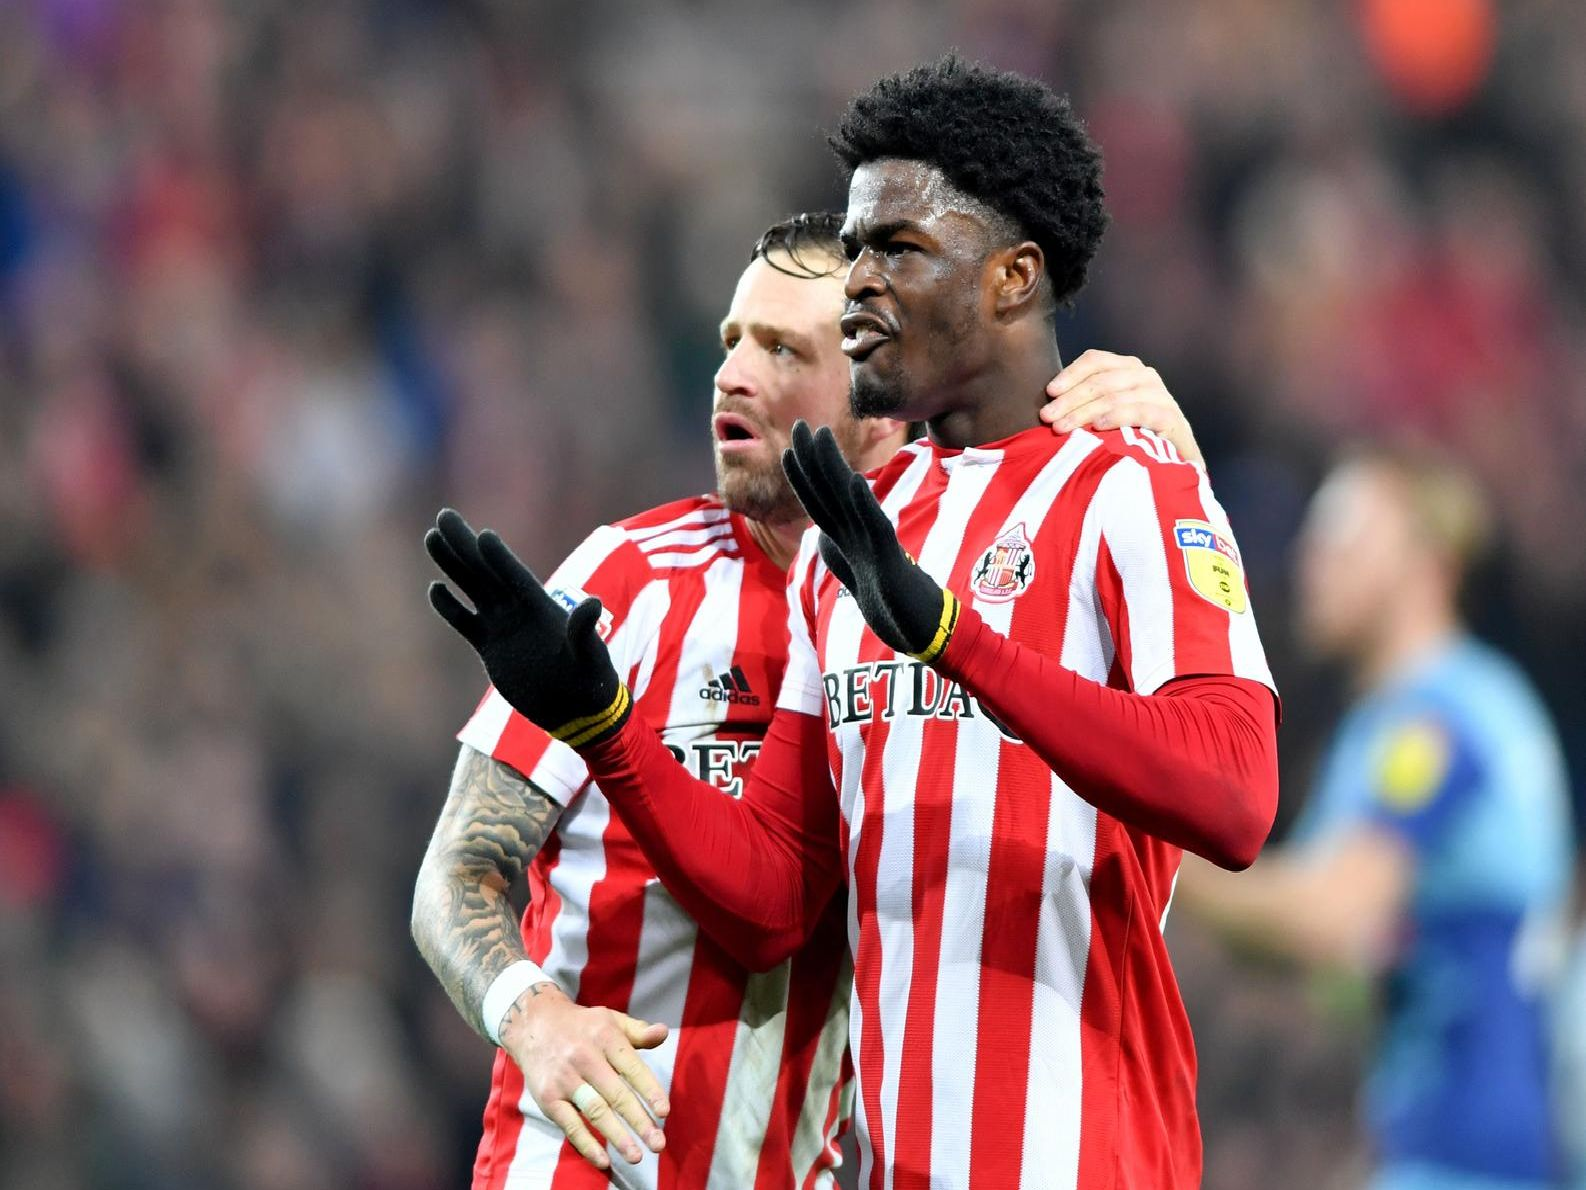 Maja made a blistering start to the season scoring in each of Sunderland's first four league games.'In total, the teenager has been involved in 12 of the Black Cats' 33 goals (10 goals and two assists) in League One this campaign (36.4 per cent).'His goals have come at crucial times too, with four coming when Sunderland were 1-0 down.'Maja has also opened the scoring on three occasions this season - against Rochdale, Peterborough and Bradford.